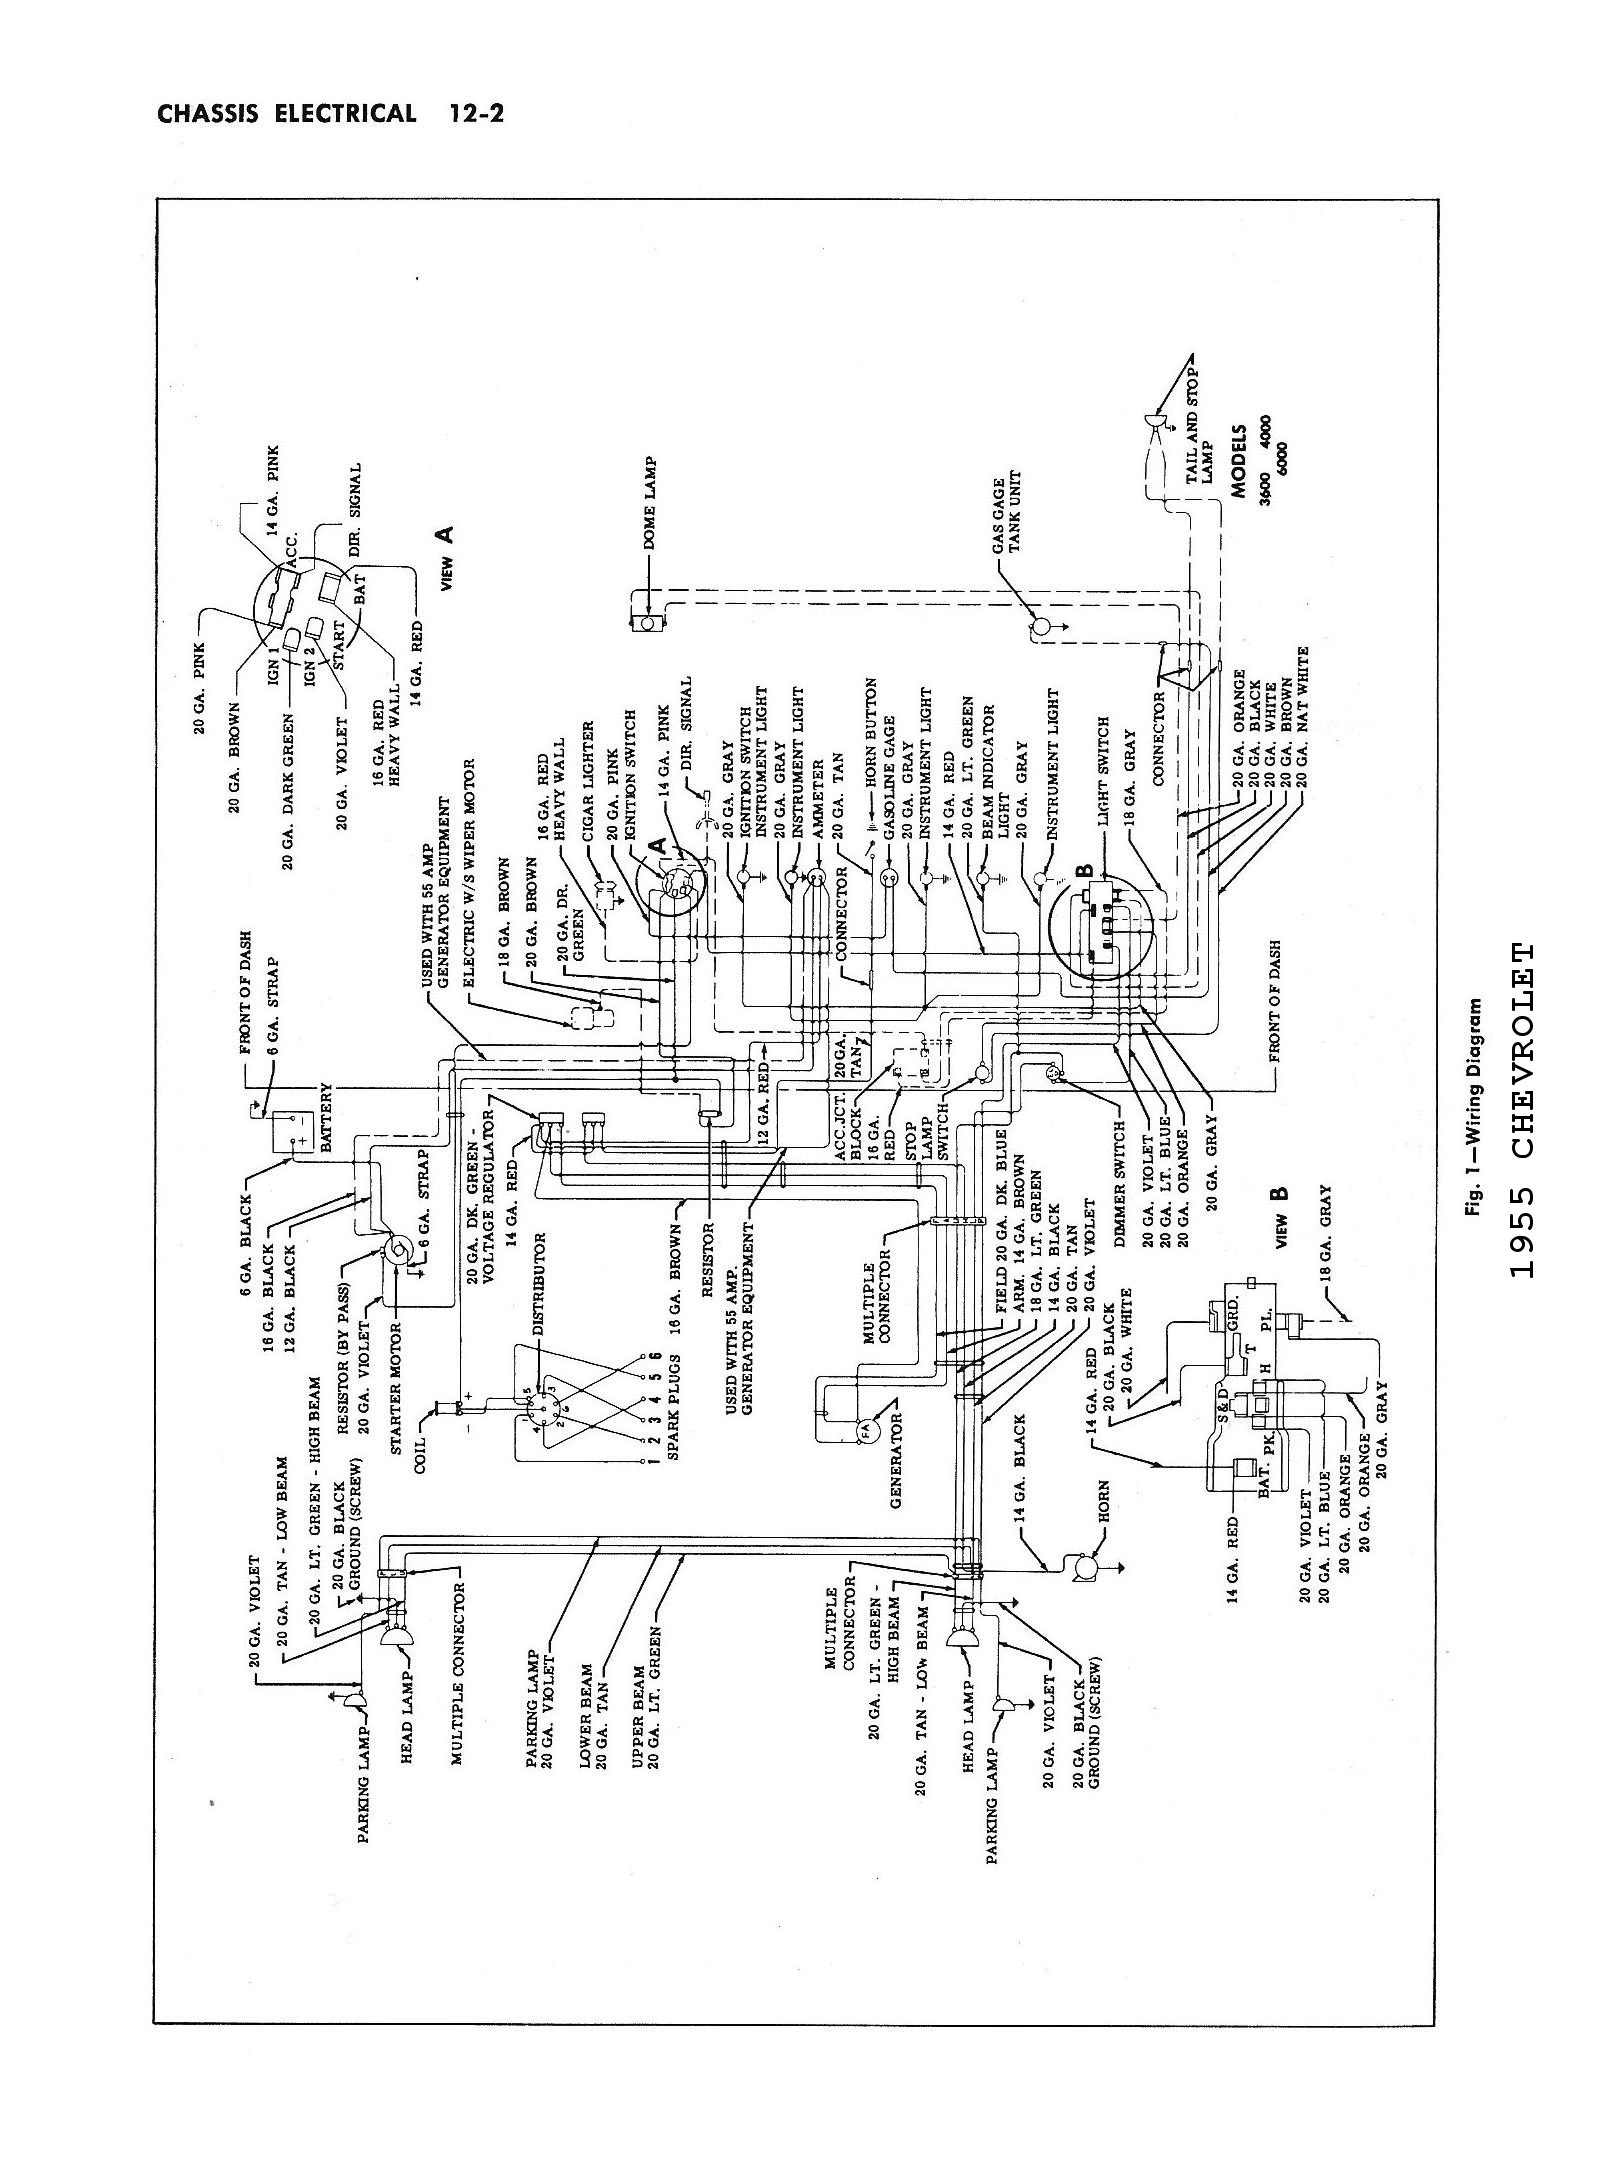 Chevy Wiring Diagrams 1958 Ford Fairlane Diagram 1955 Car Passenger Truck